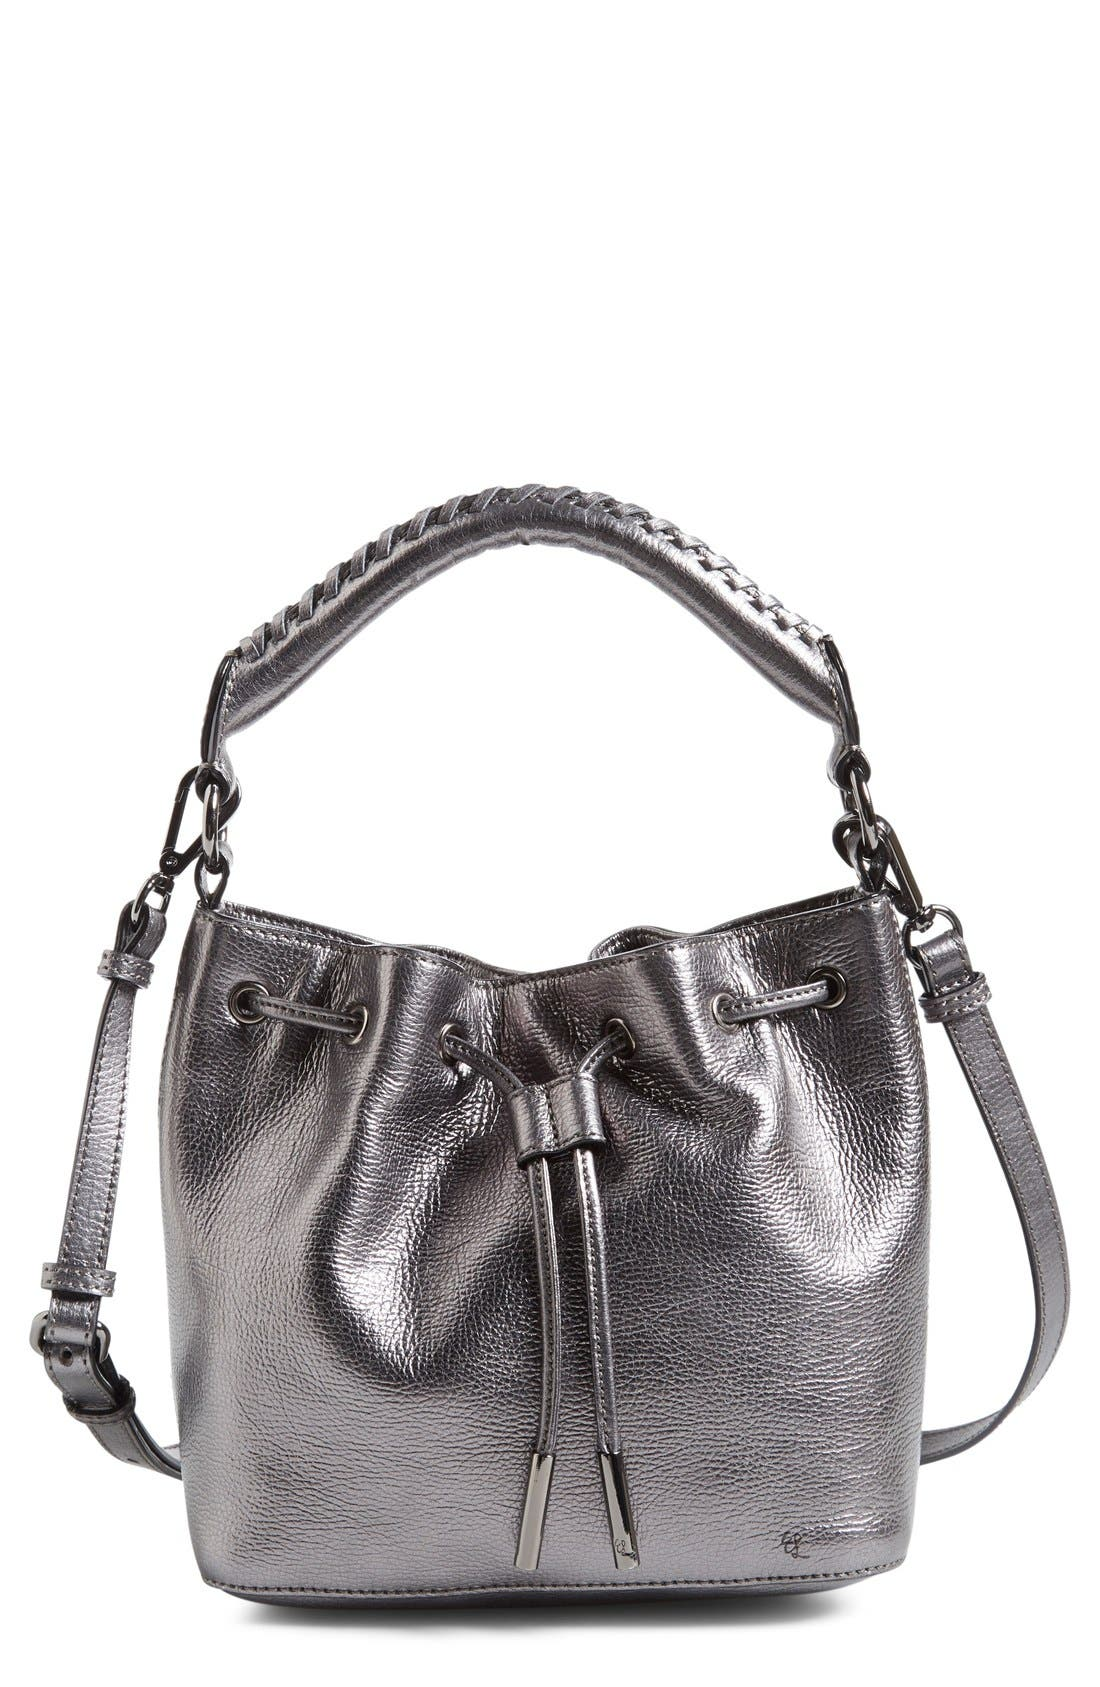 Alternate Image 1 Selected - Elliott Lucca 'Gigi Bon Bon' Leather Bucket Bag